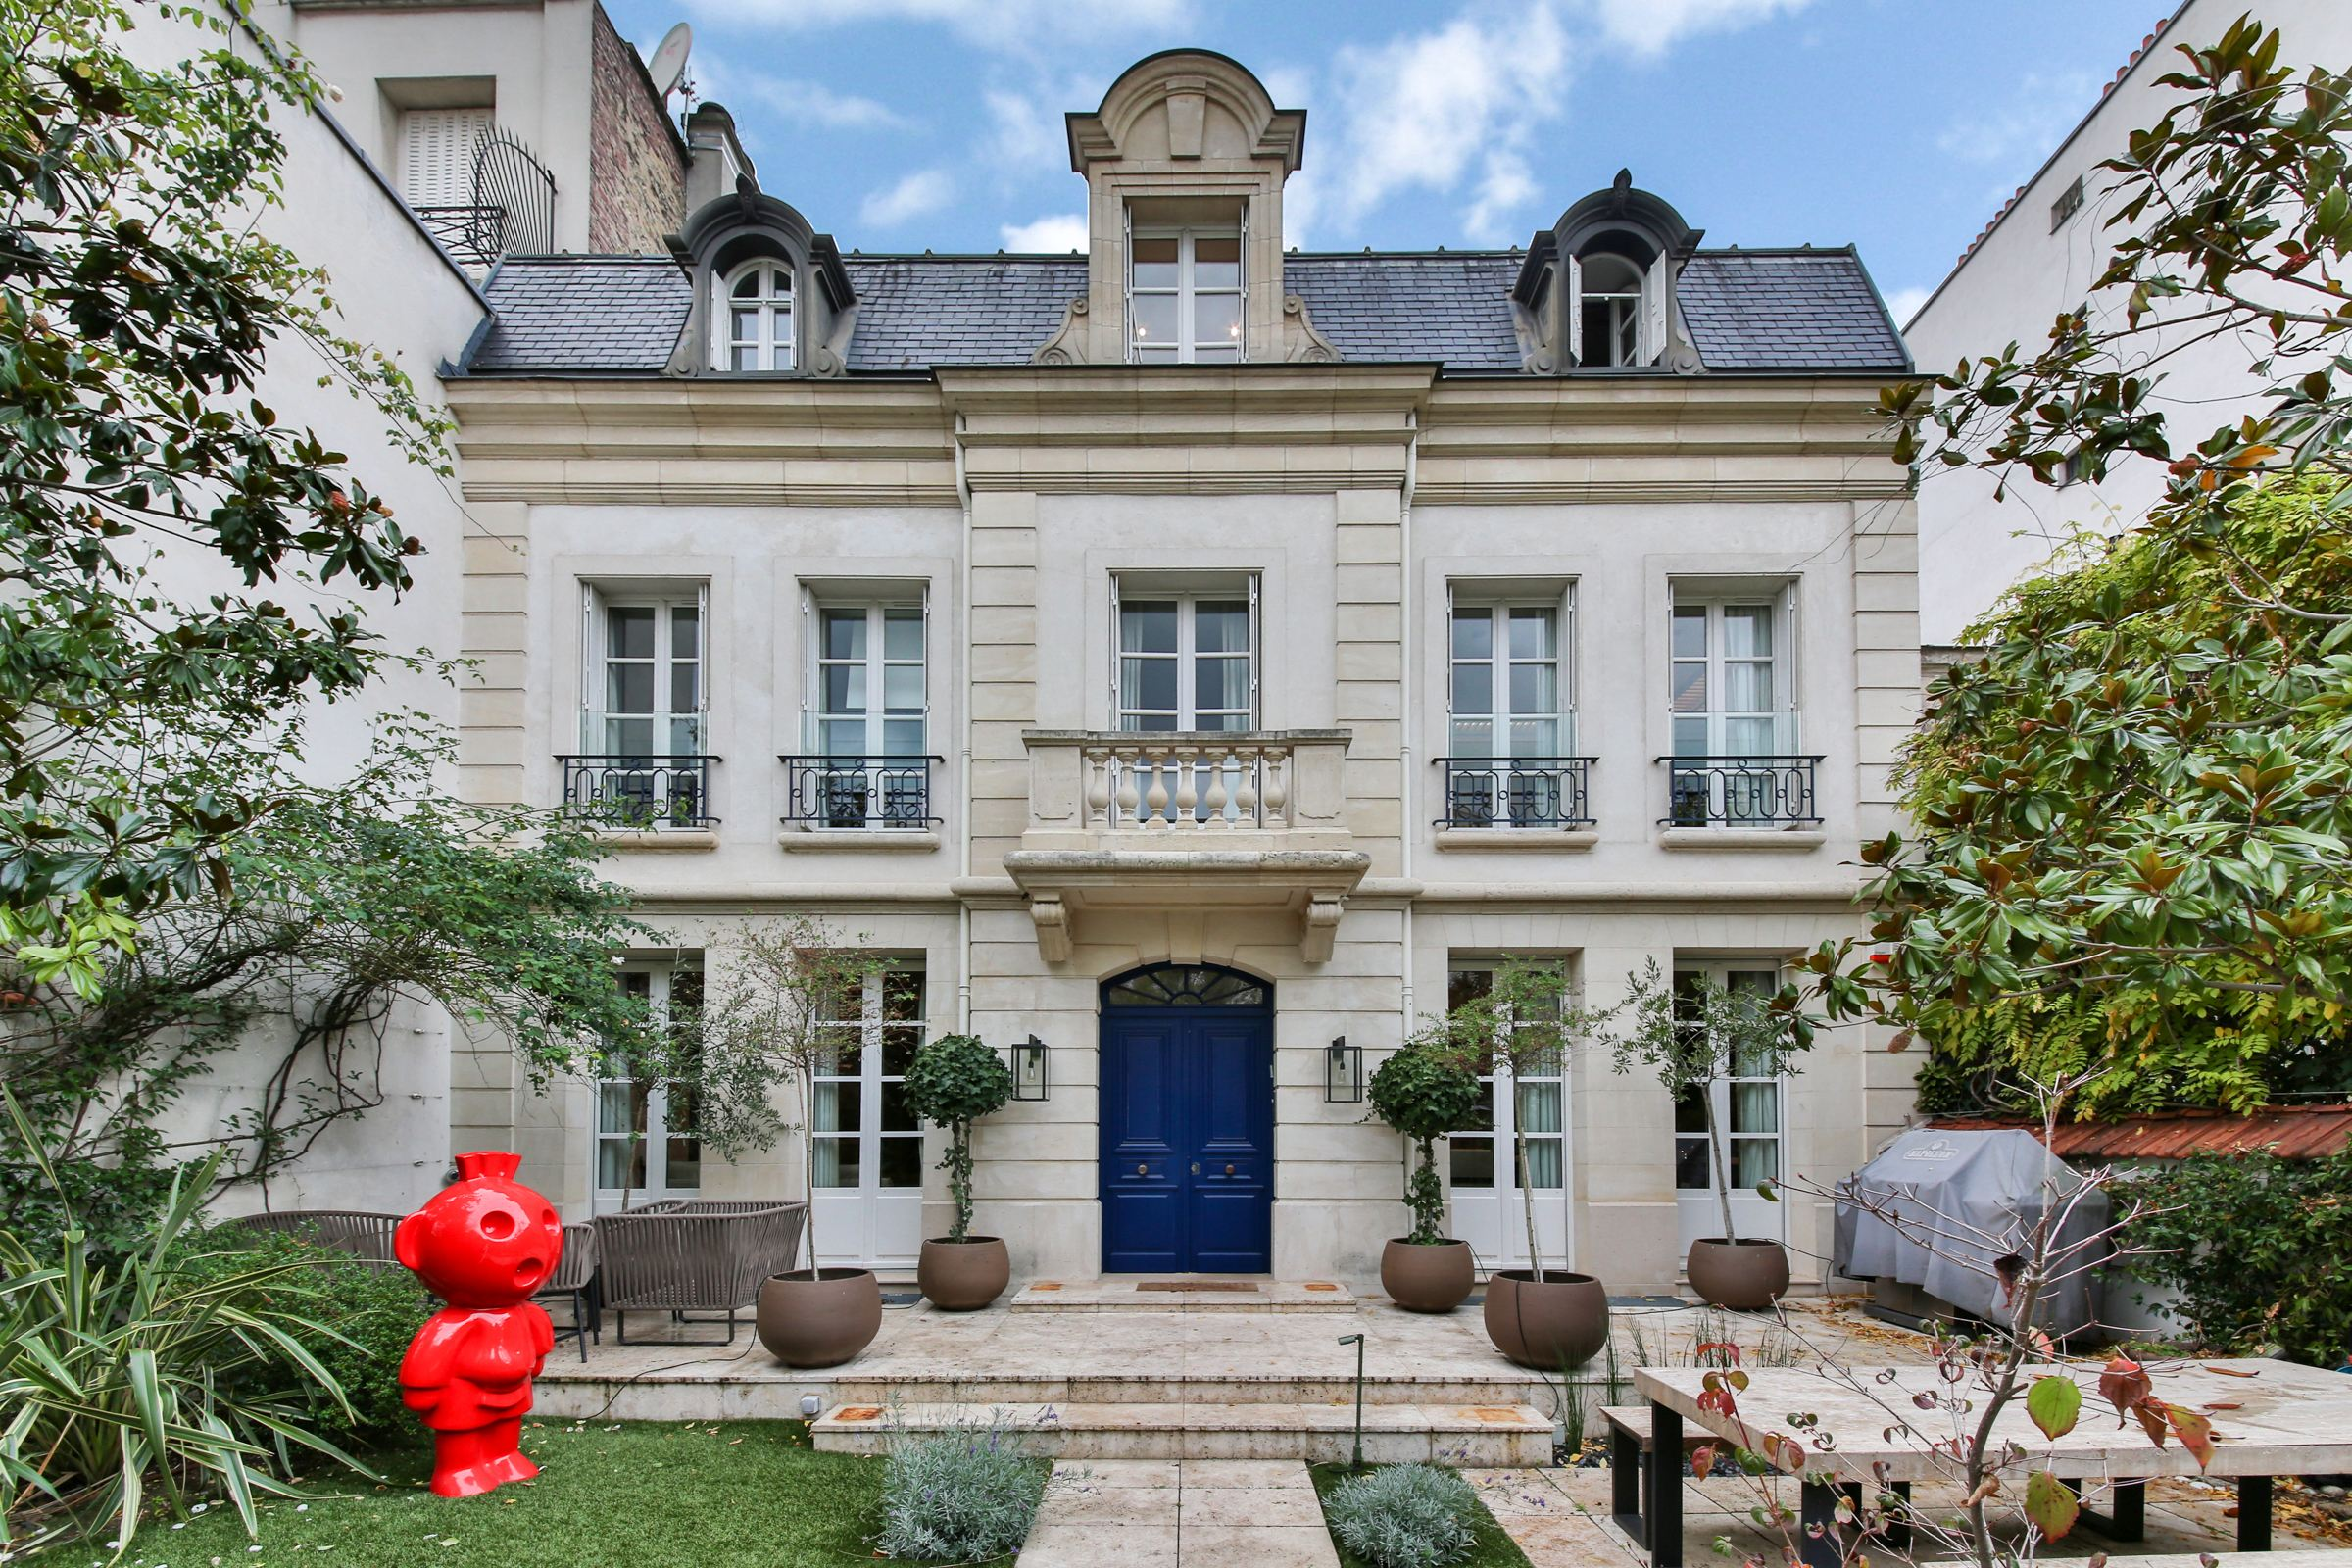 sales property at A 300 sq.m Private Mansion with garden for sale Neuilly - Mairie, 4 bedrooms